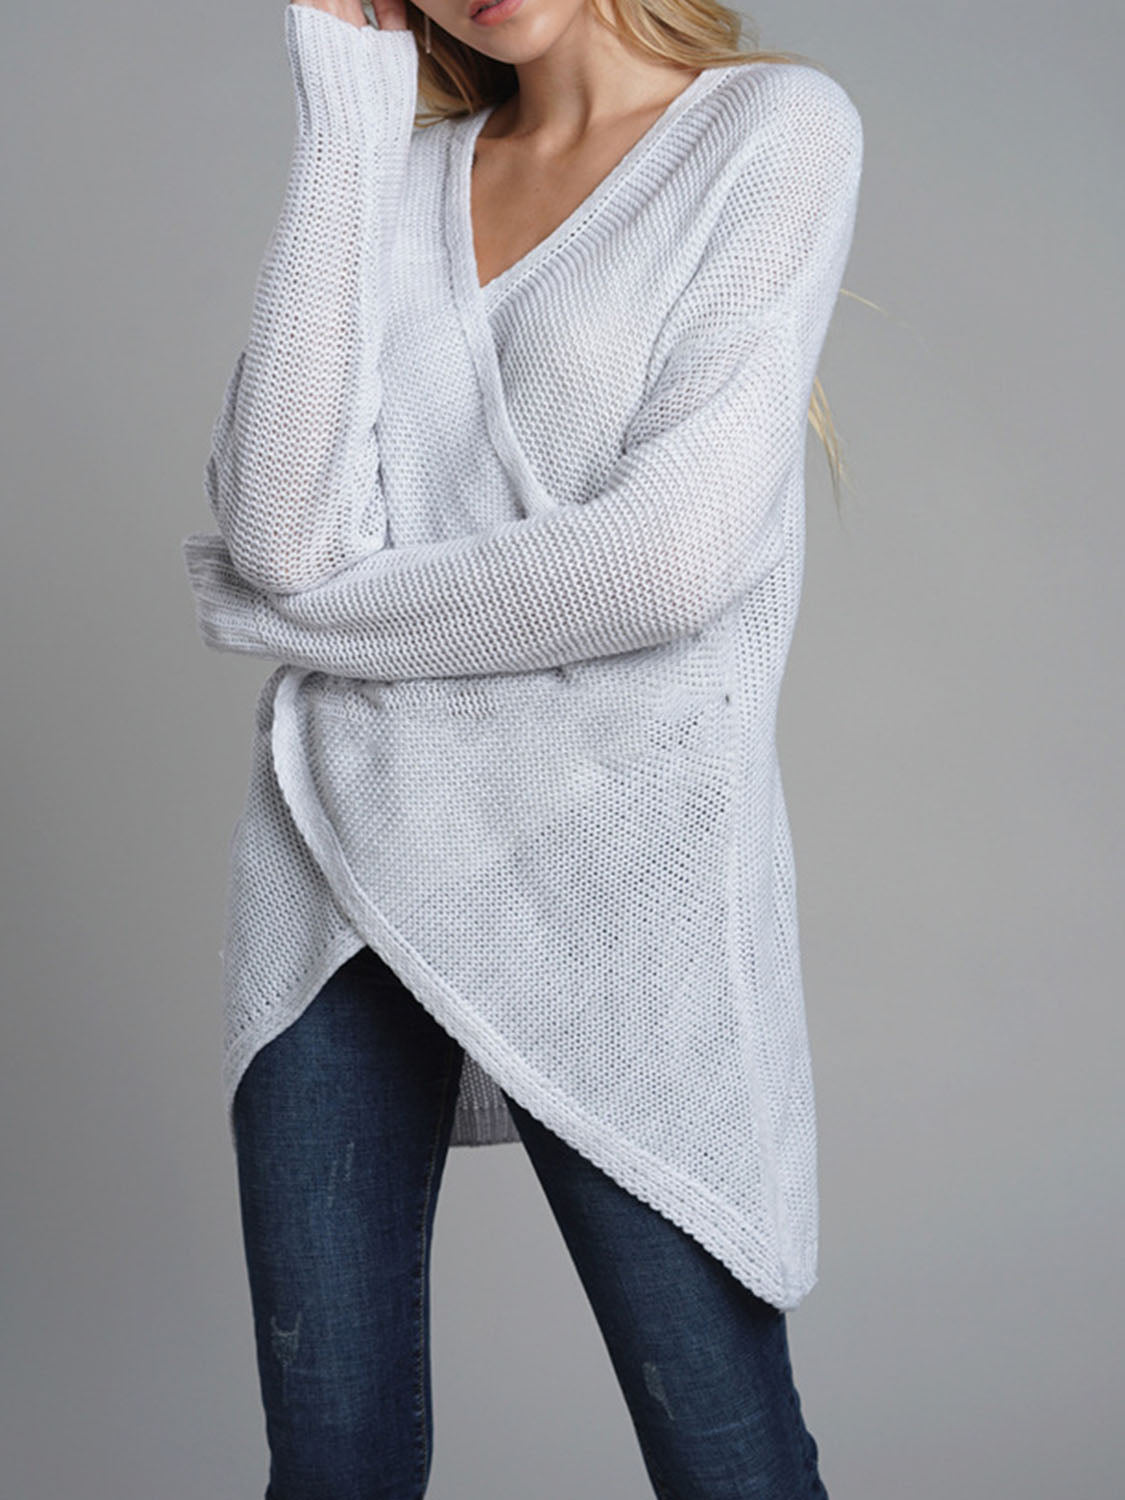 Gray V-neck Long Sleeve Women Knit Sweater